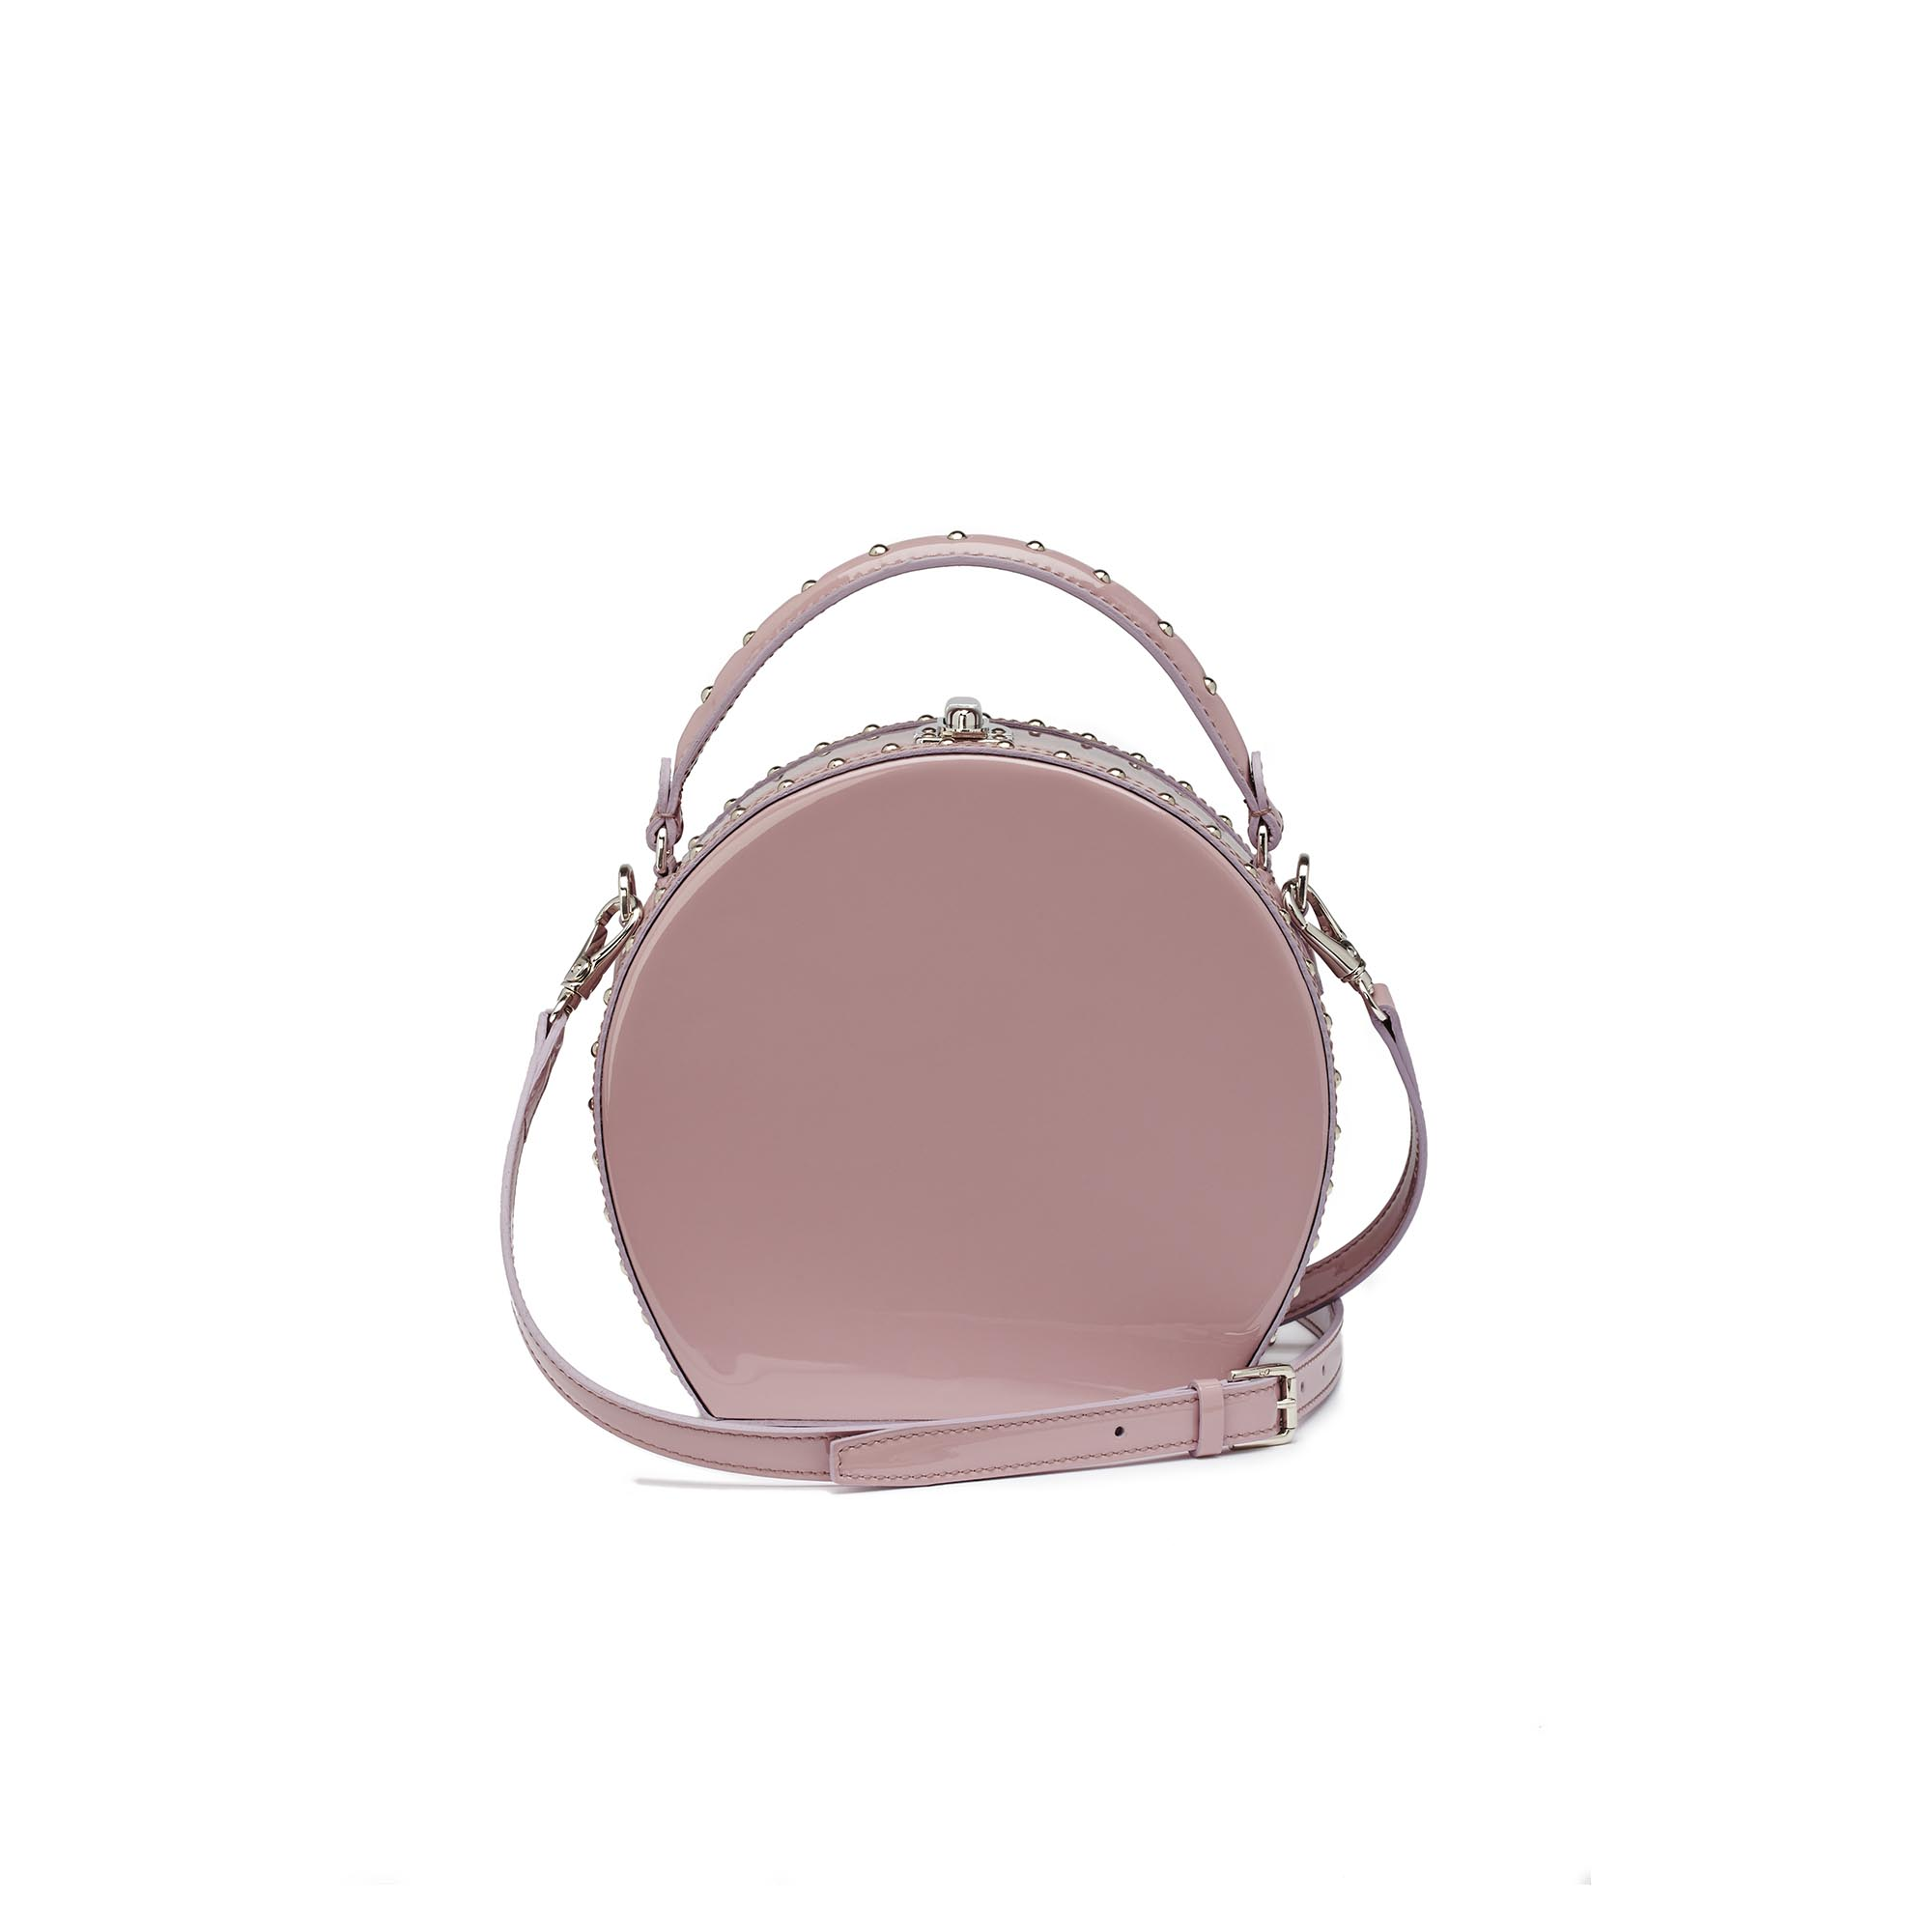 Regular-Bertoncina-mauve-patent-leather-bag-Bertoni-1949_01